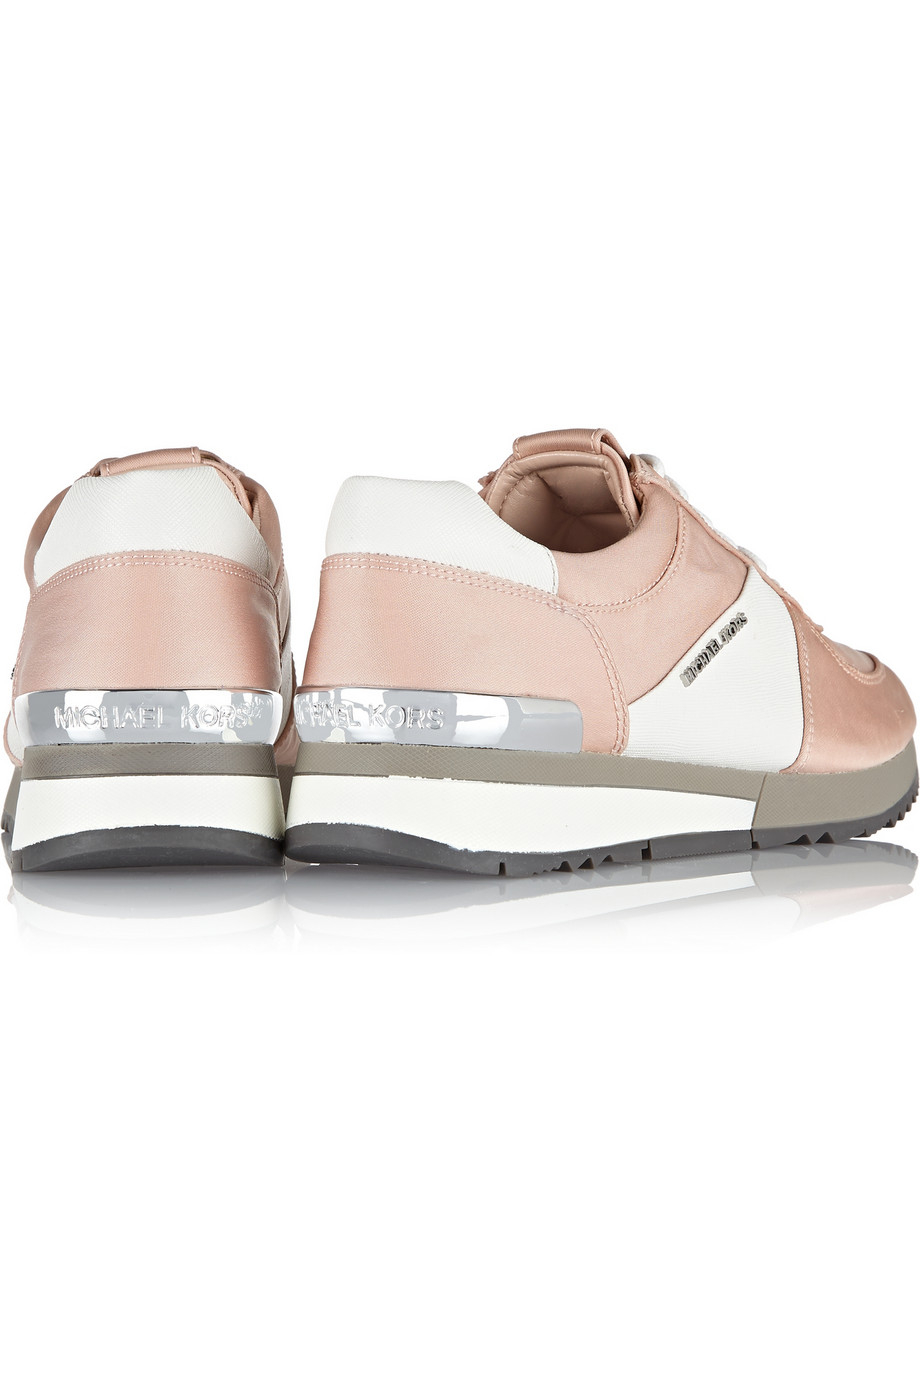 michael kors sneakers nelly